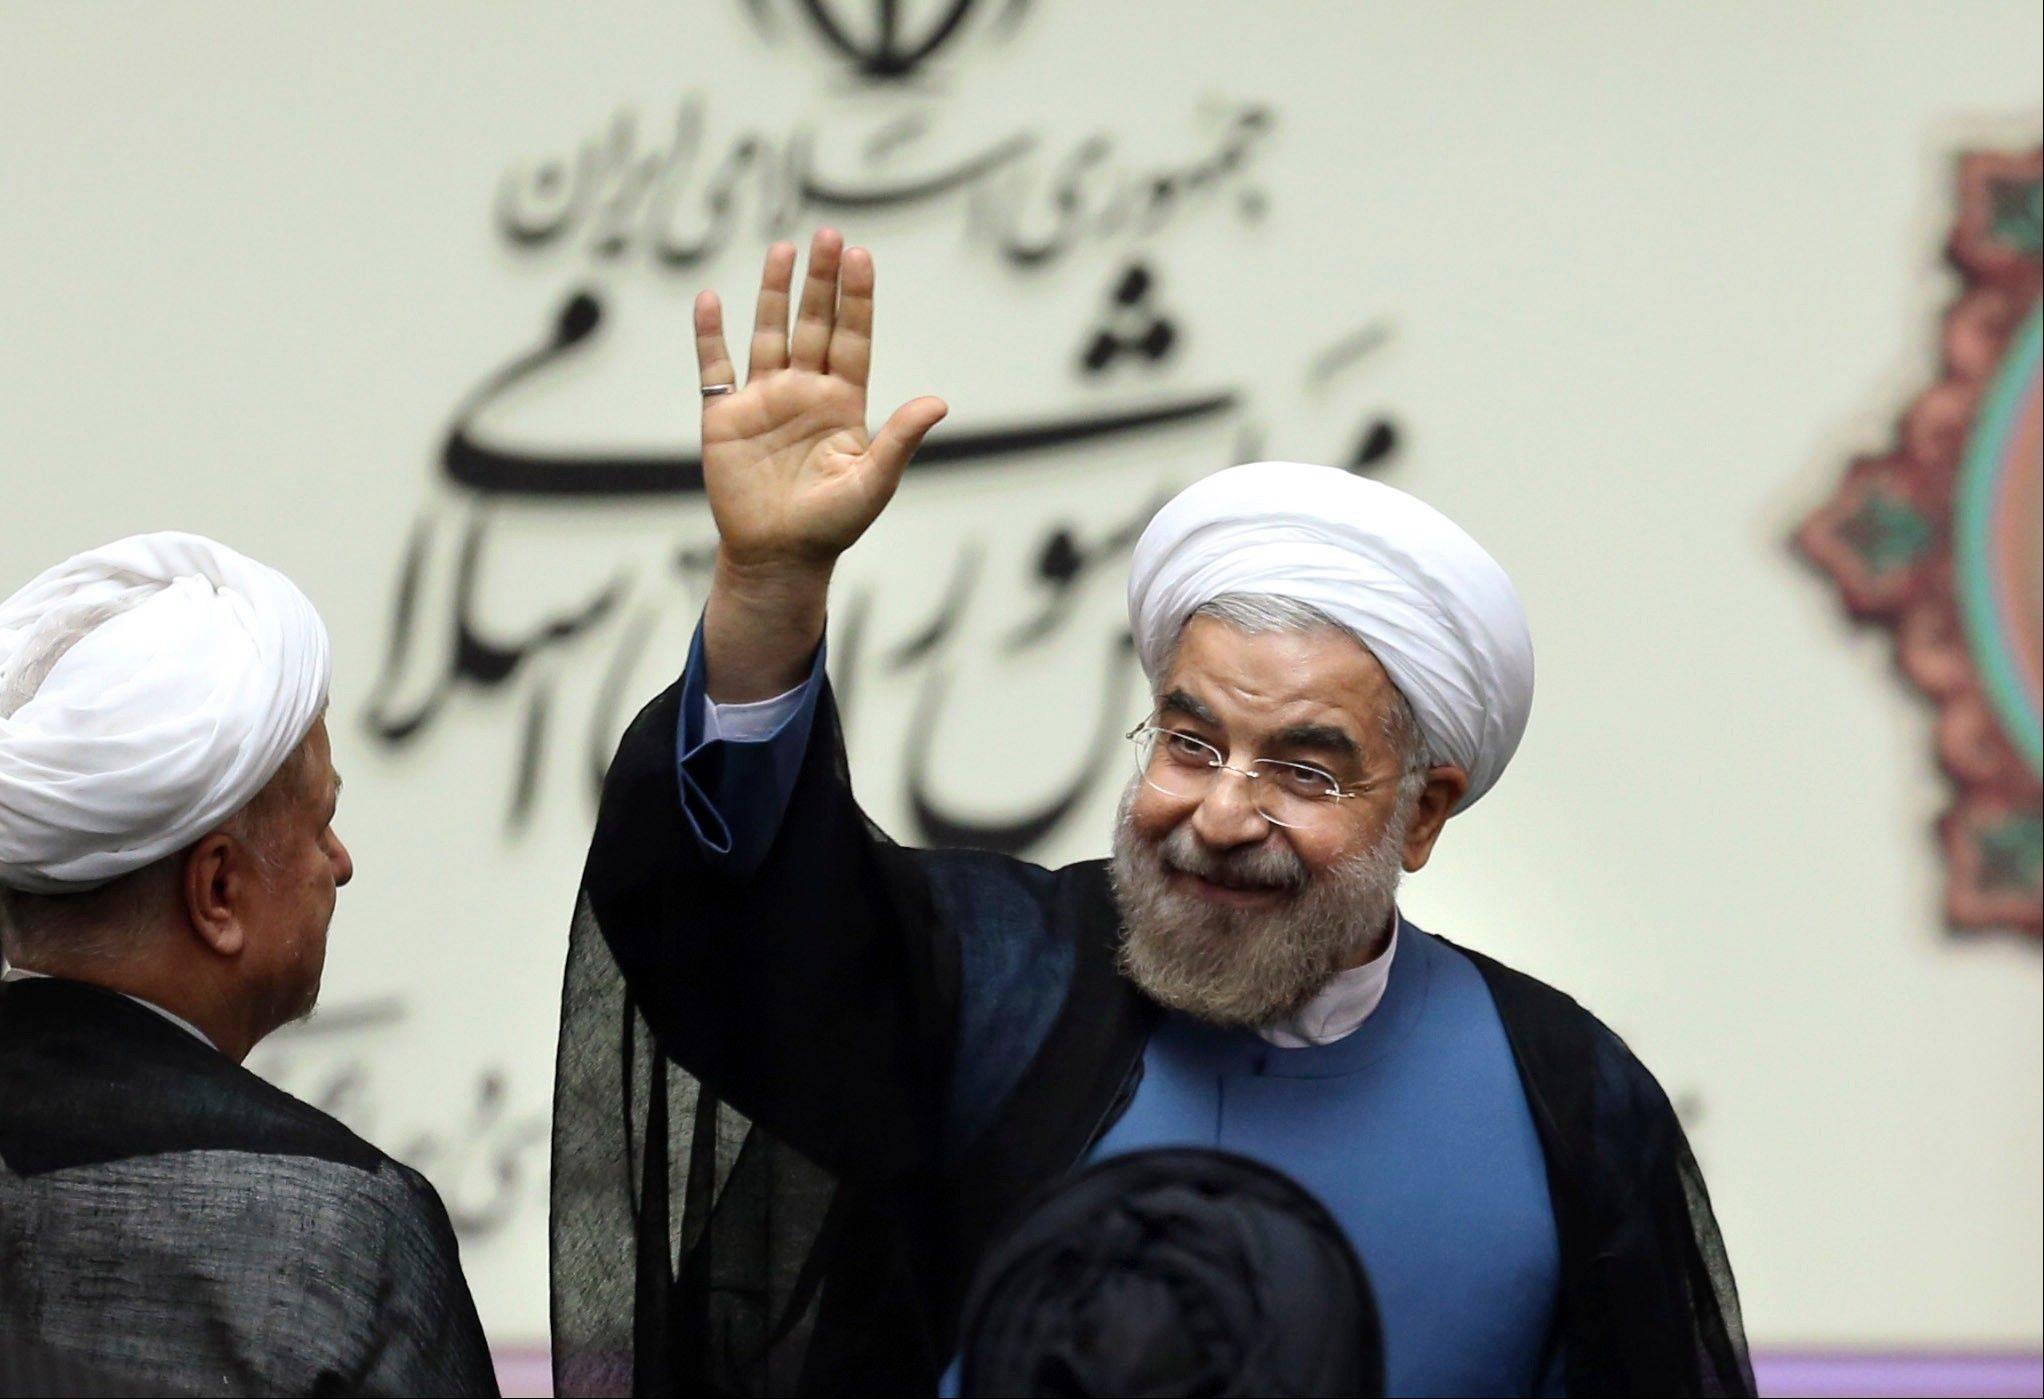 New Iranian President Hasan Rouhani waves after his swearing-in at the parliament Sunday in Tehran.